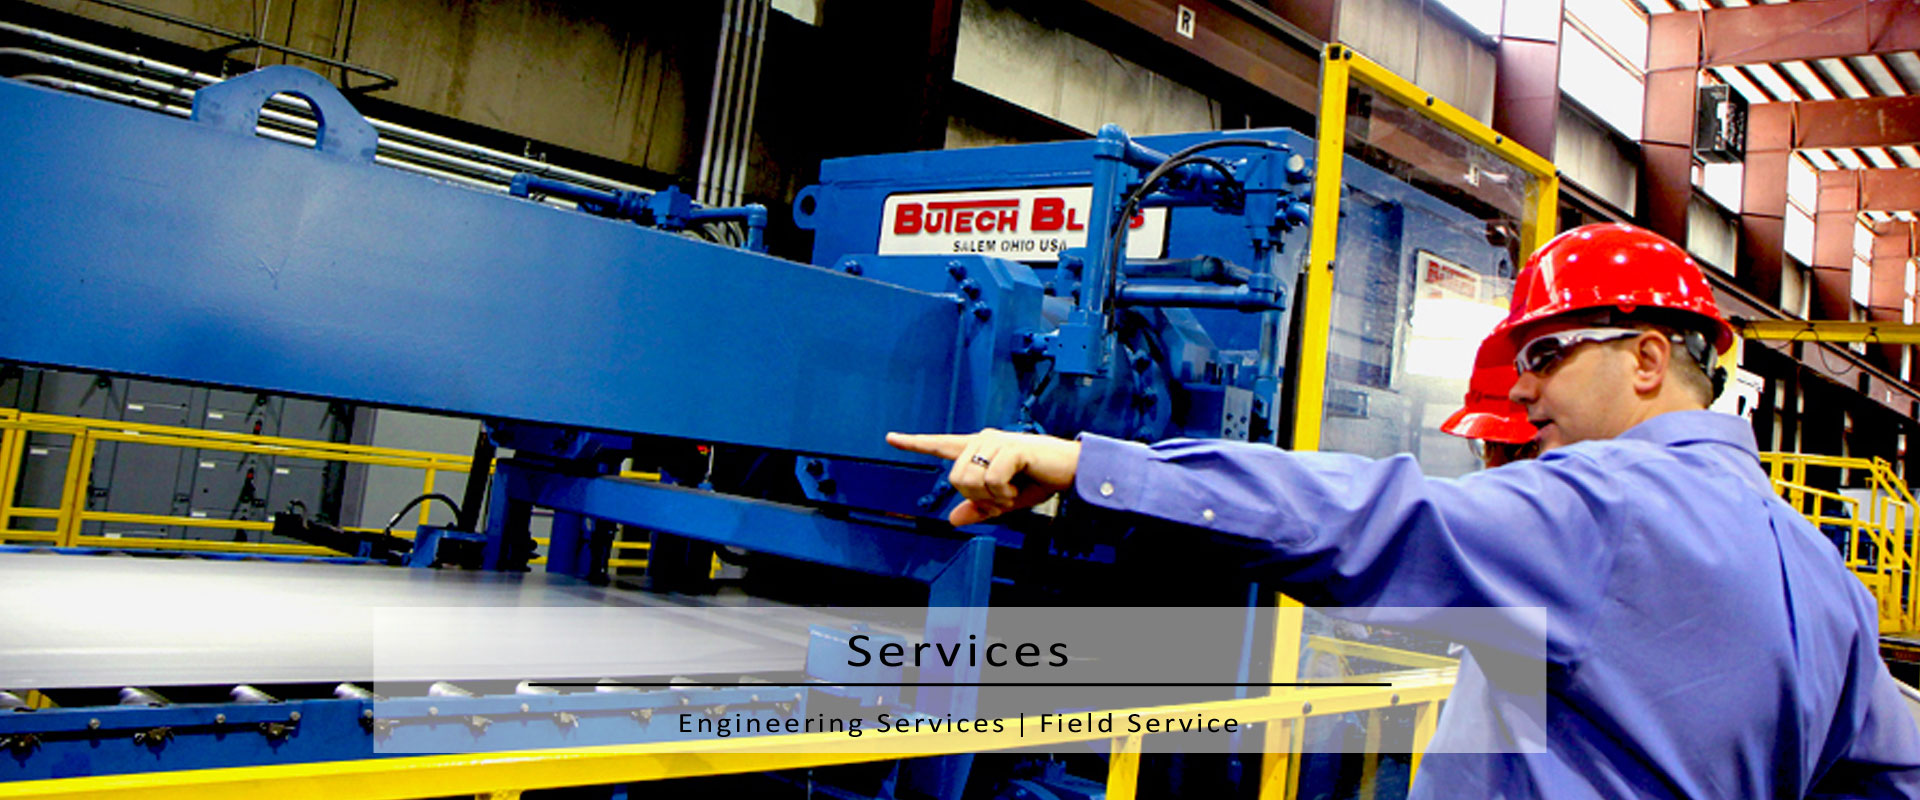 engineering services-field service